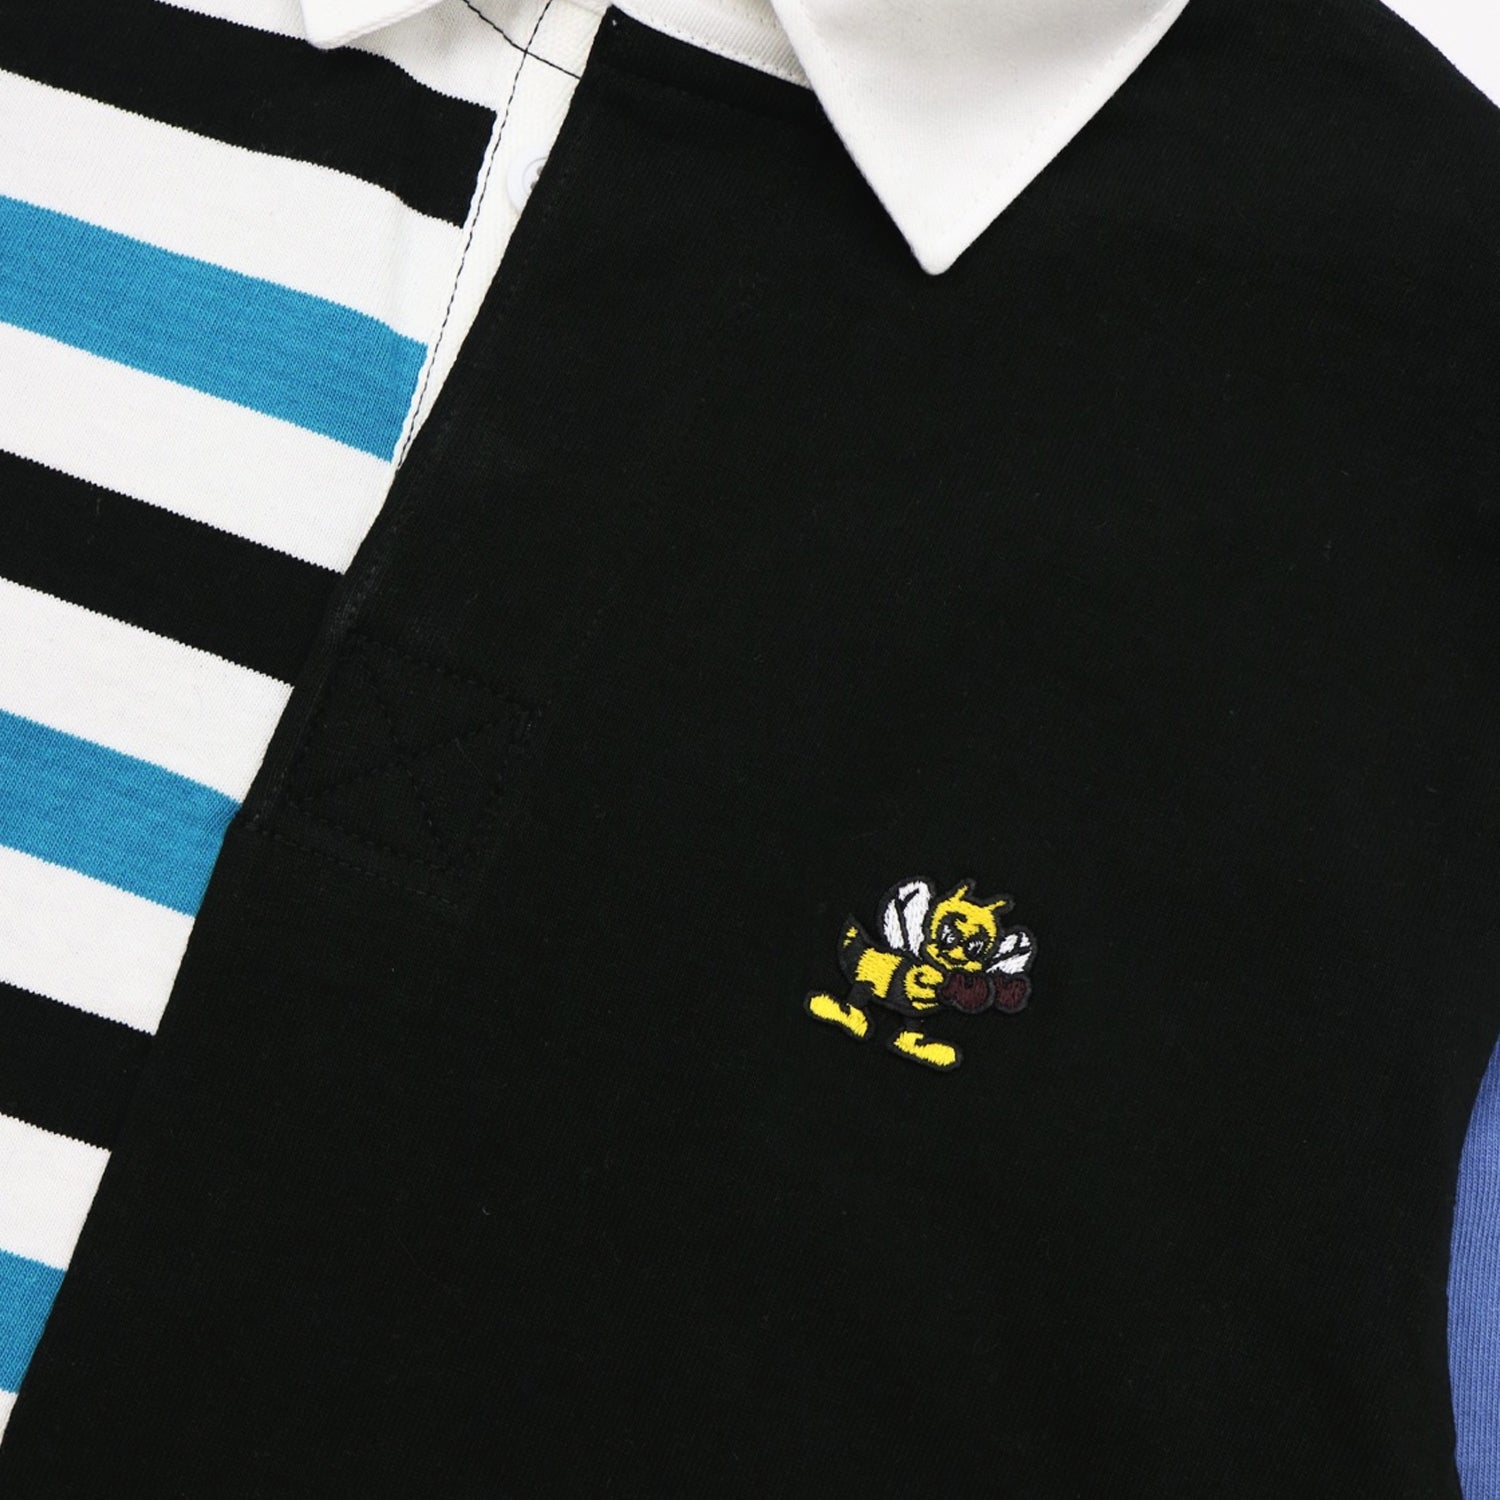 LS AFTERSCHOOL RUGBY T-SHIRT